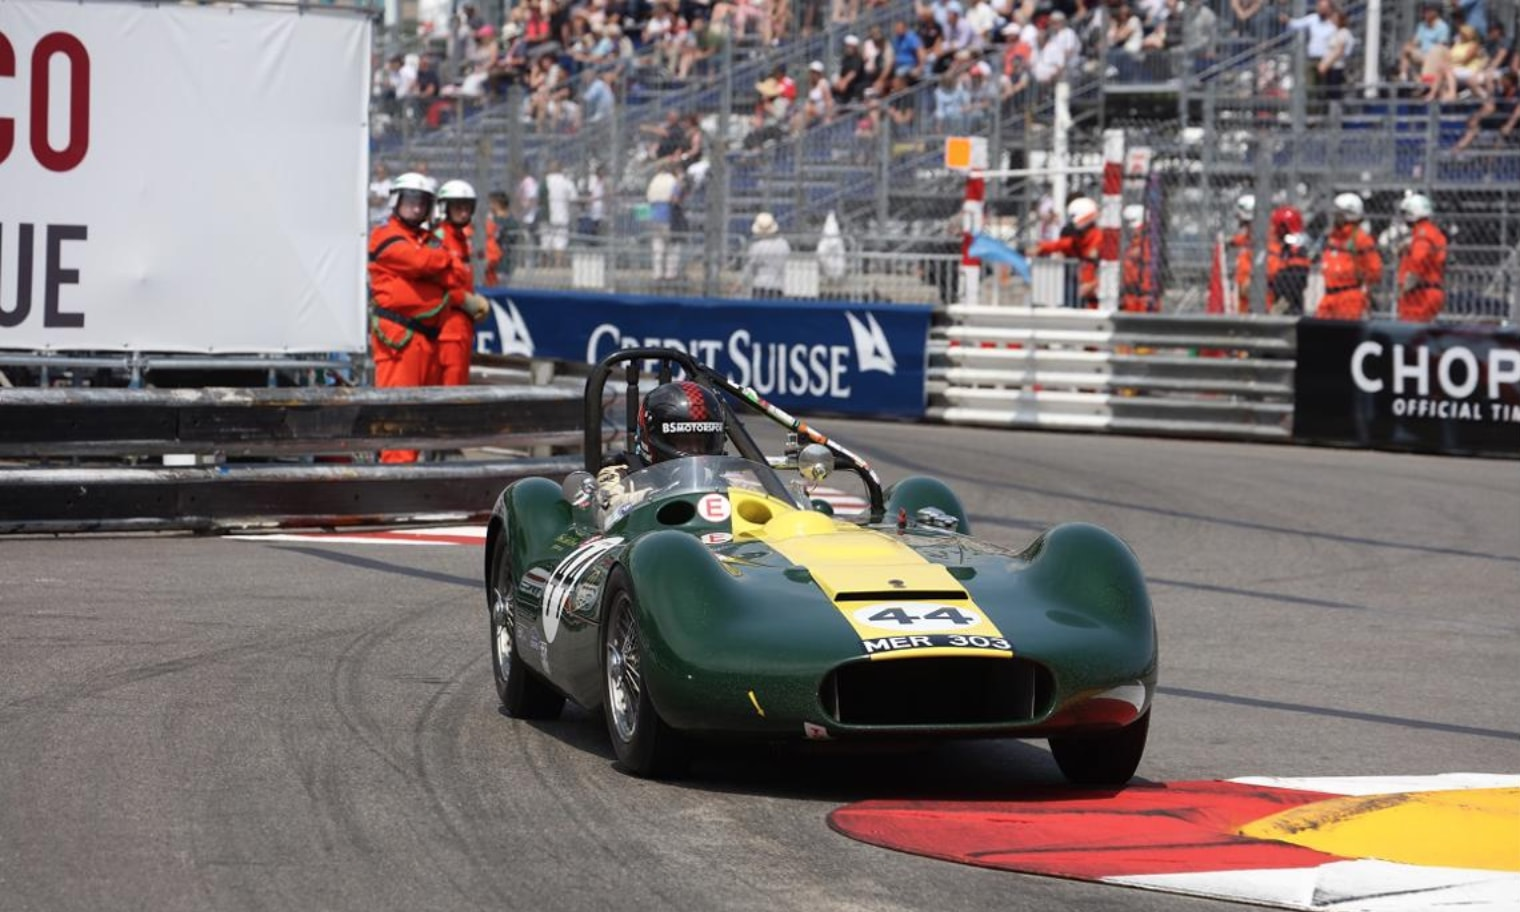 Classic Car PR: JD Classics achieved an astonishing one-two finish at Monaco Historique, marking the fourth consecutive win for the team in Monaco